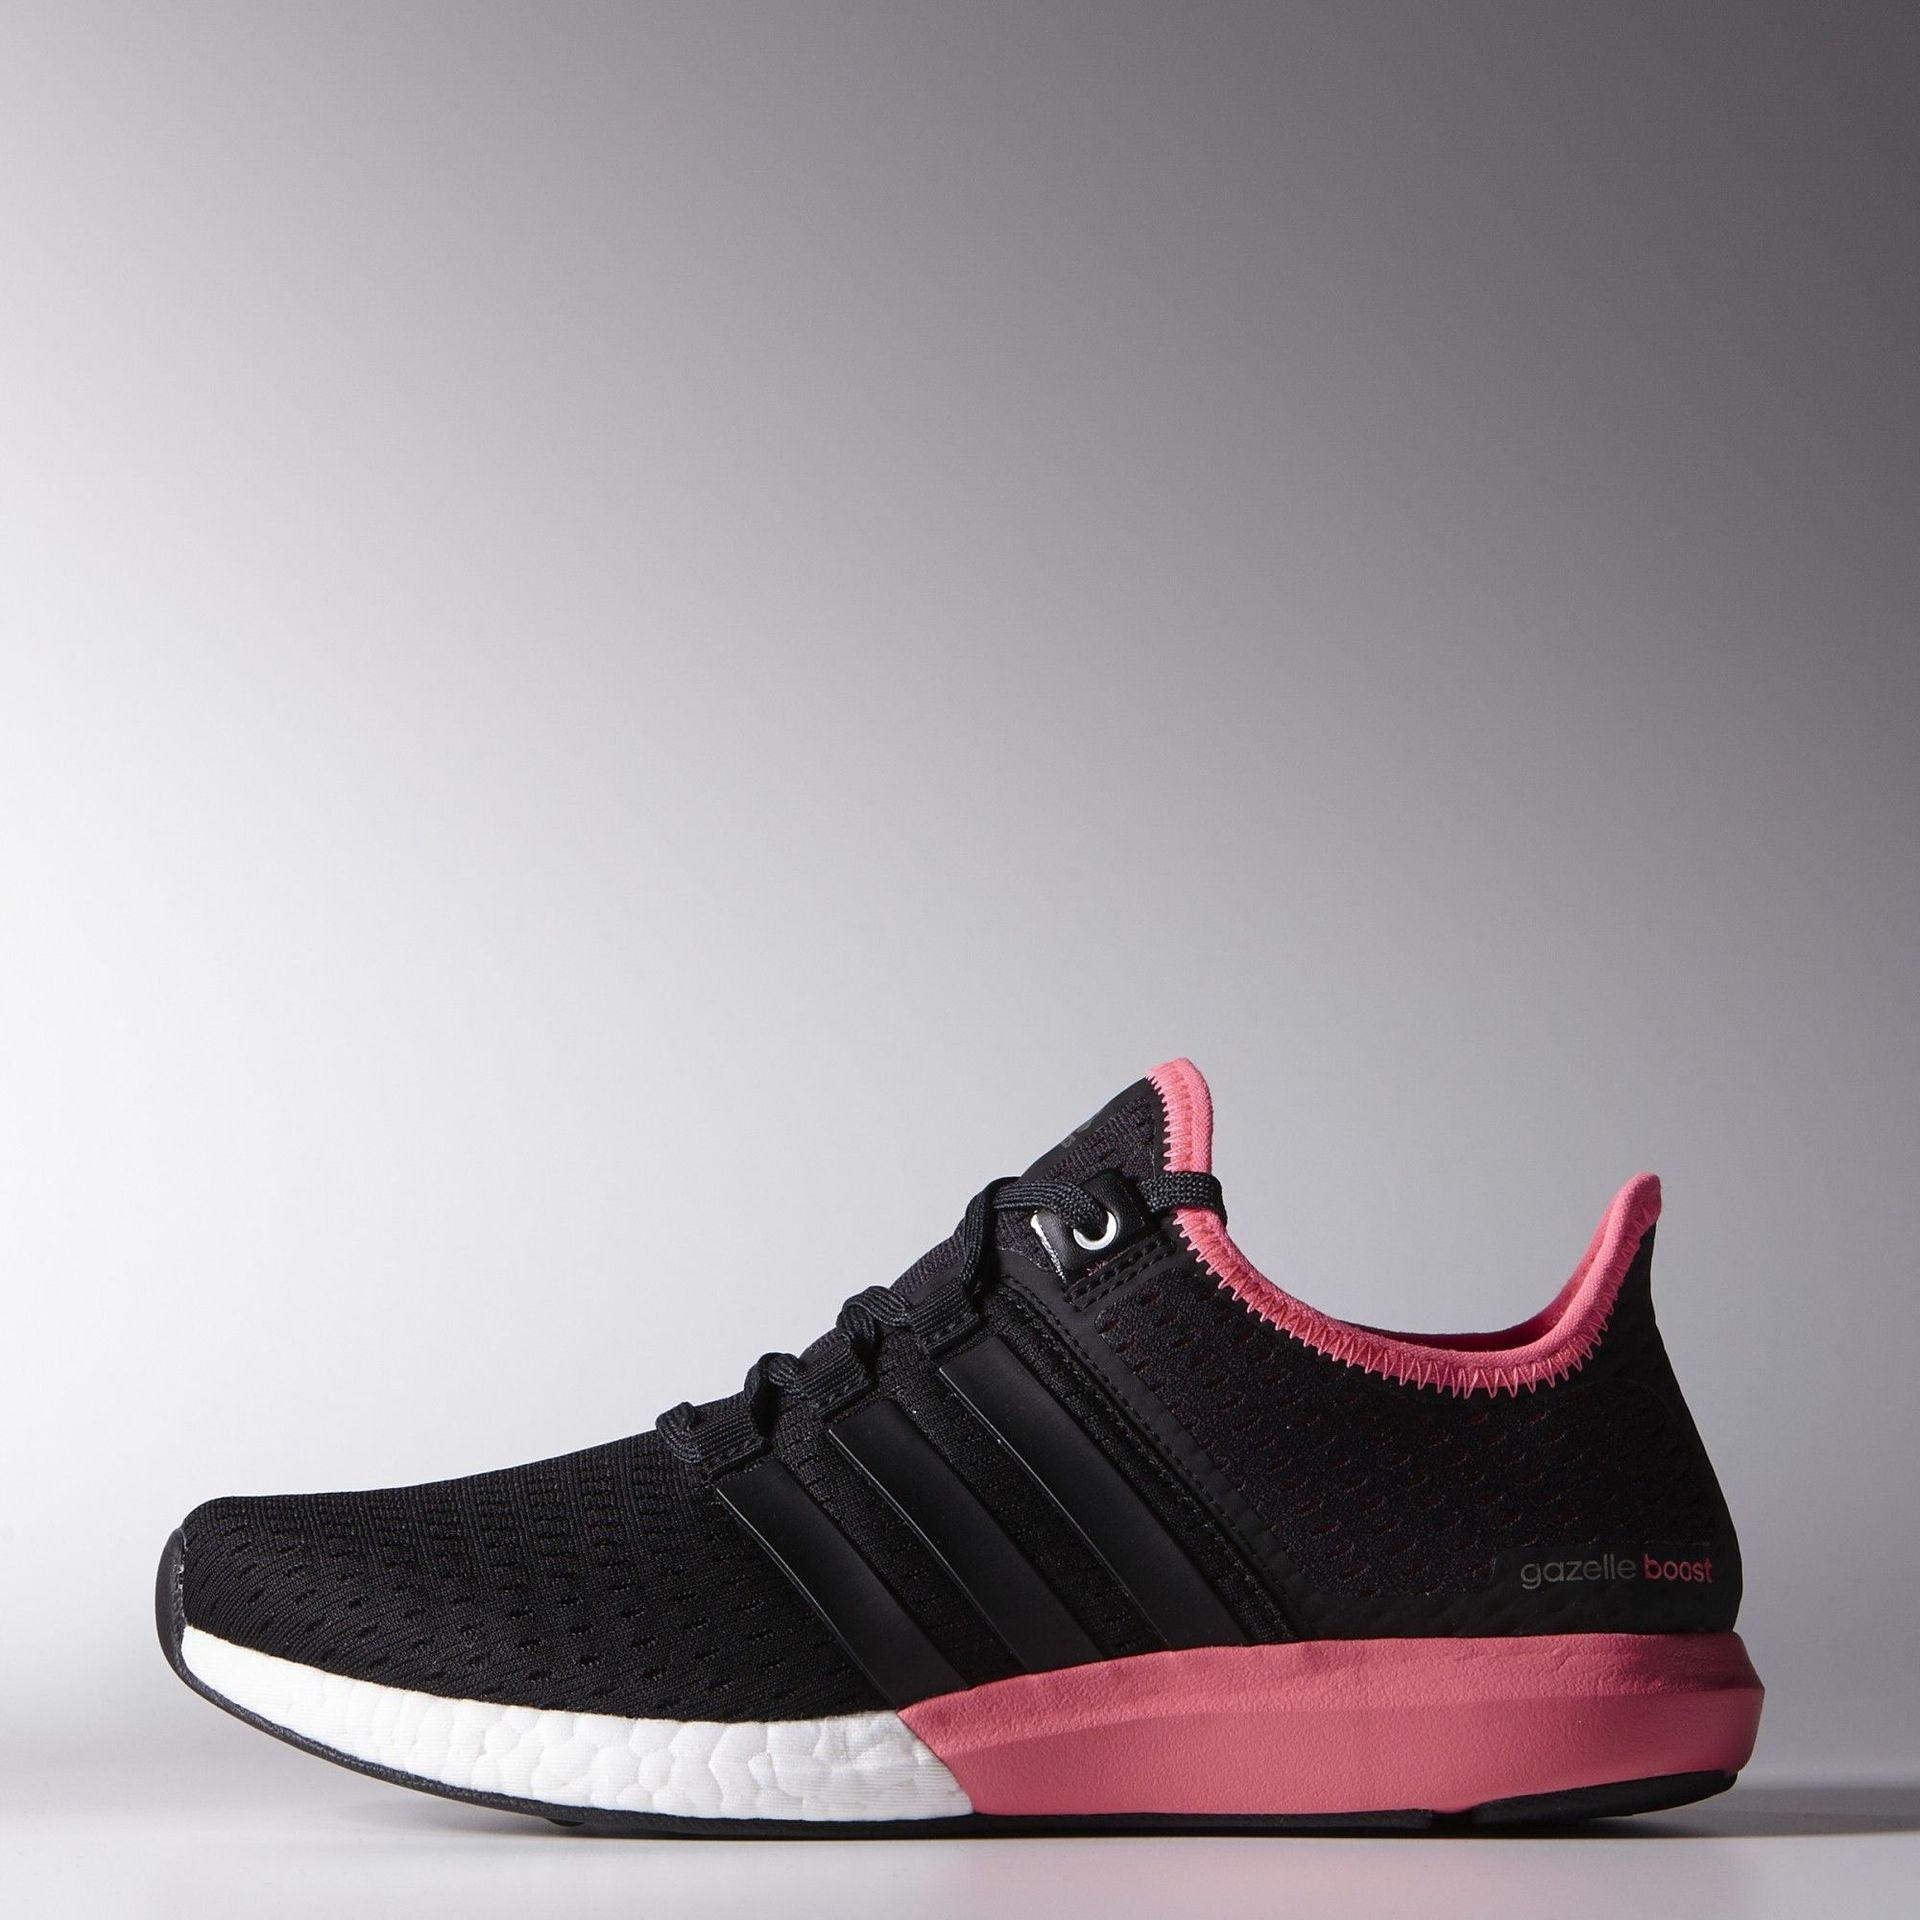 db1a34a3e126 ... top quality adidas cc gazelle boost womens shoes out there sports f394a  a5dad